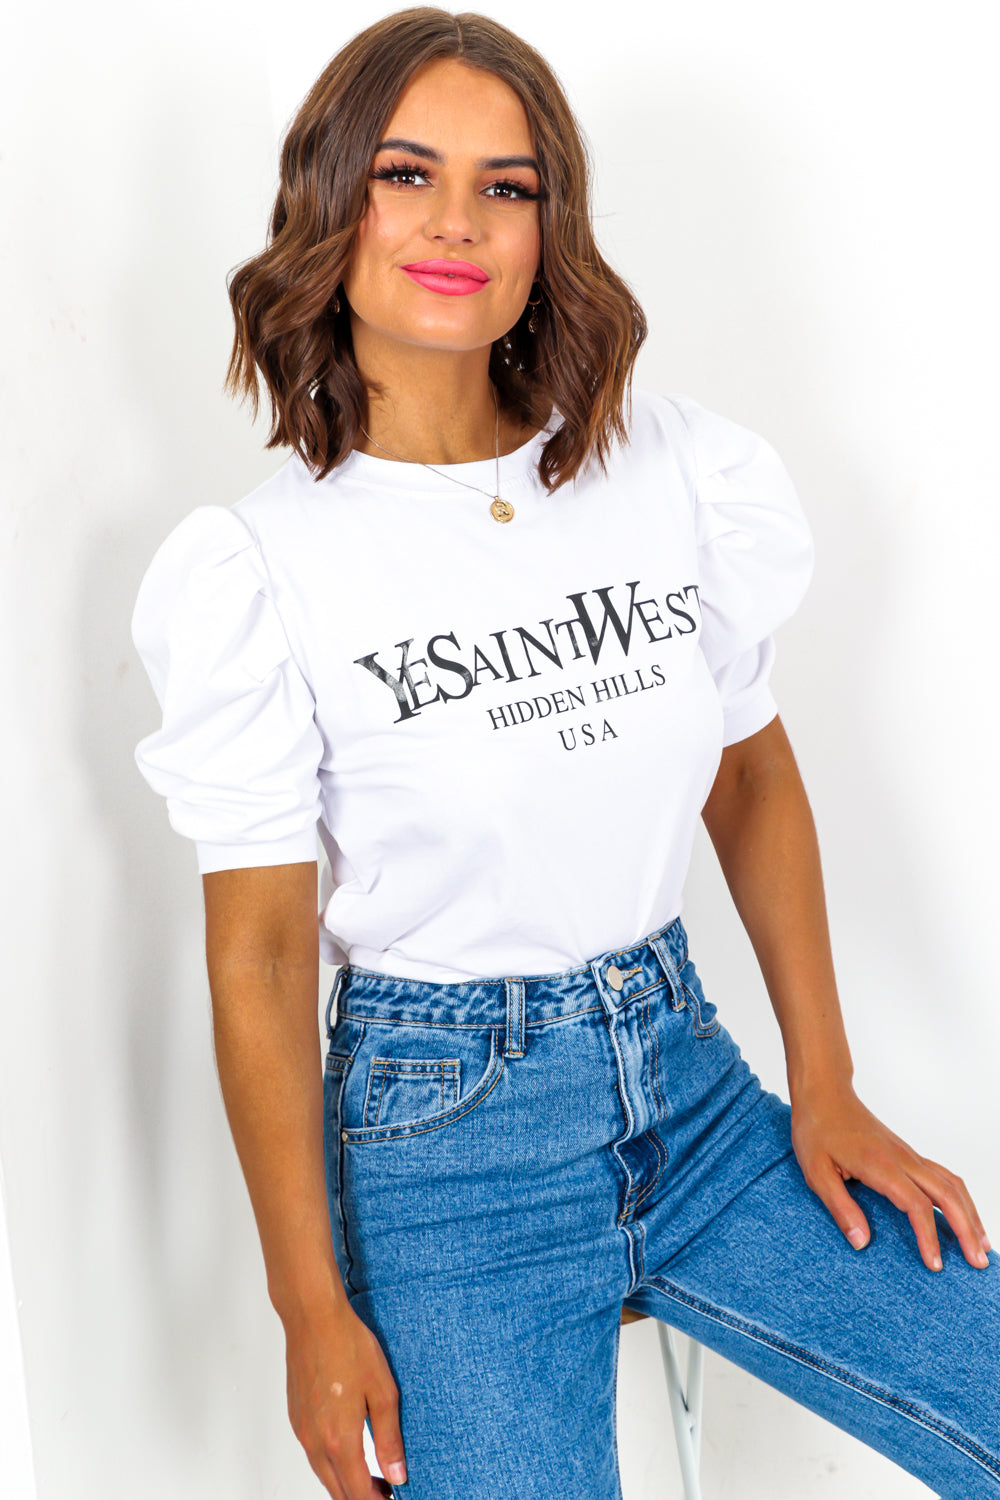 YeSaintWest - Puff Sleeve Top In WHITE